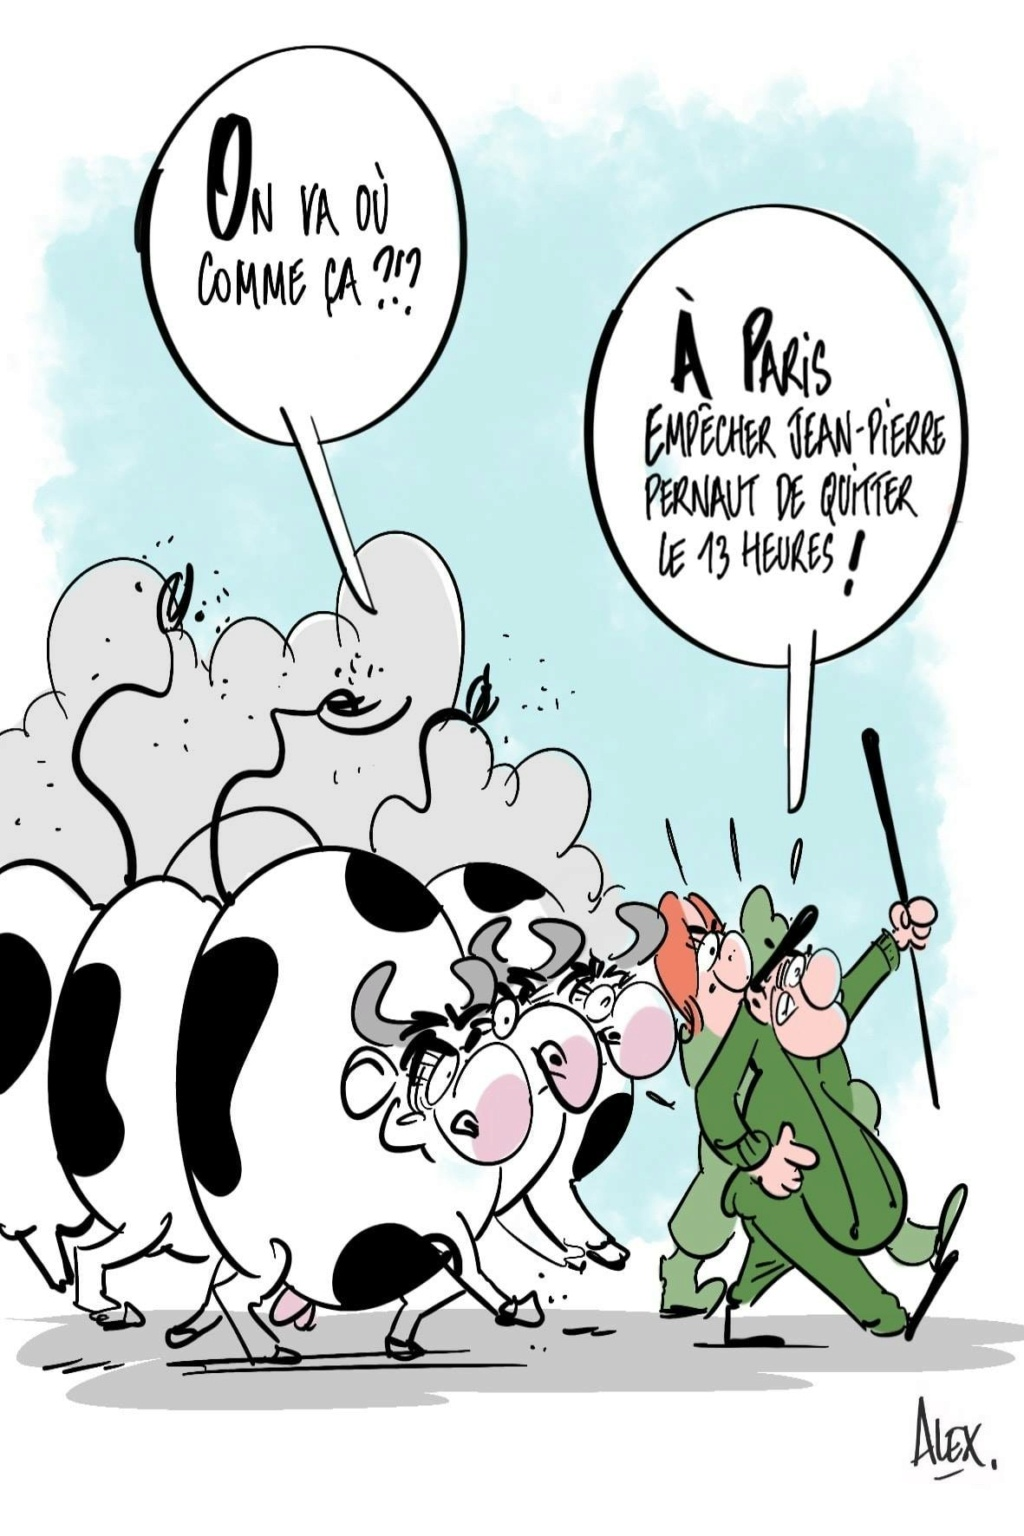 humour en images II - Page 7 5f668410